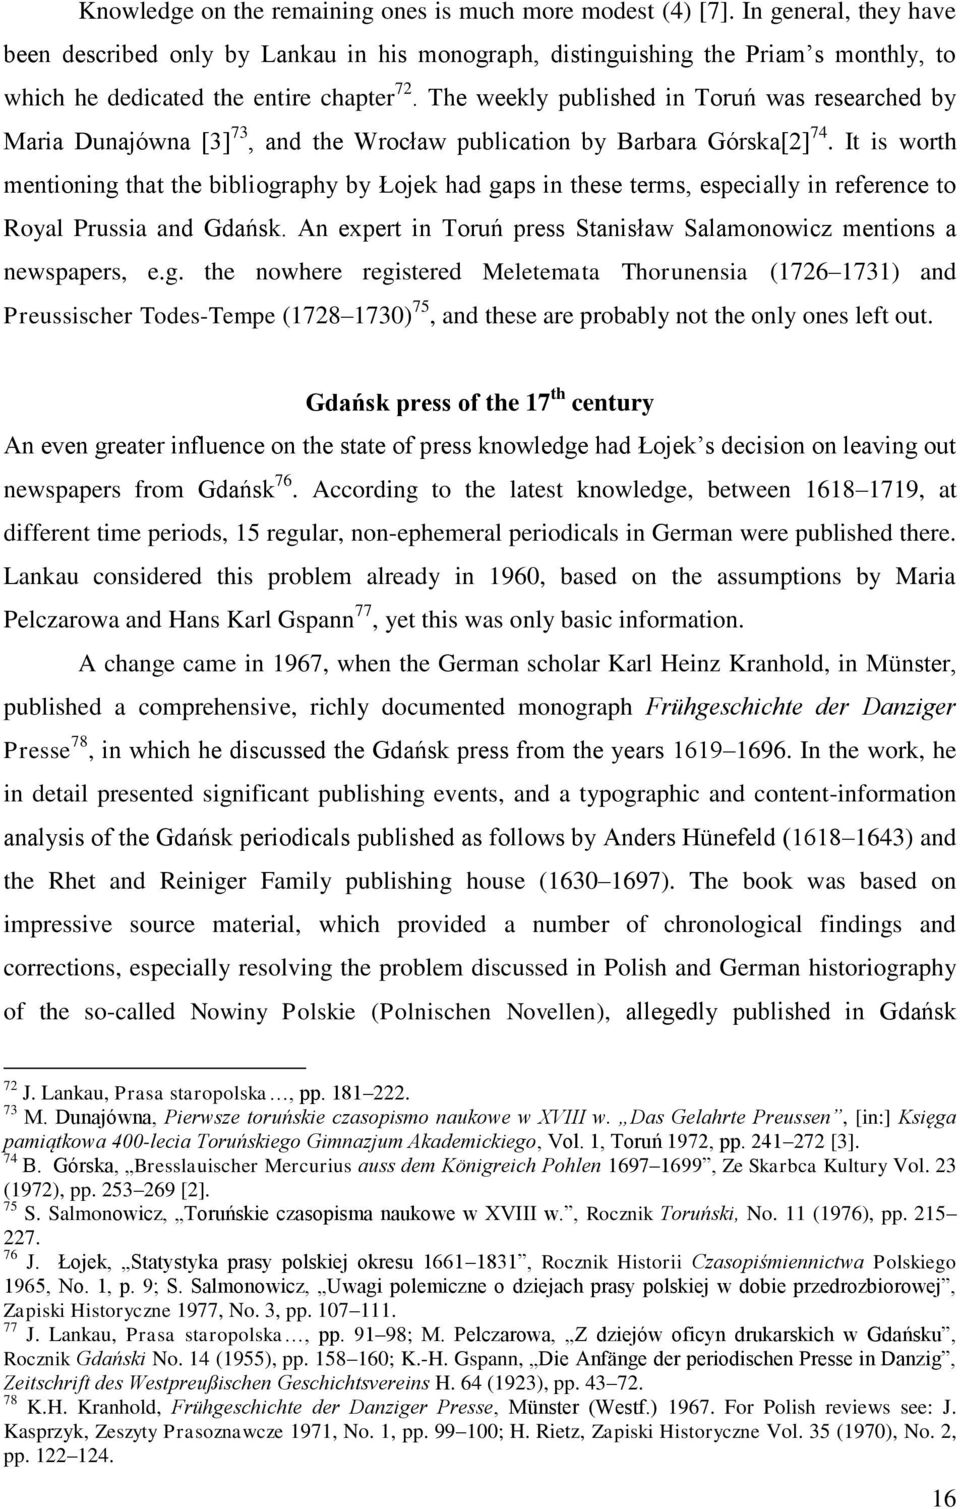 The weekly published in Toruń was researched by Maria Dunajówna [3] 73, and the Wrocław publication by Barbara Górska[2] 74.